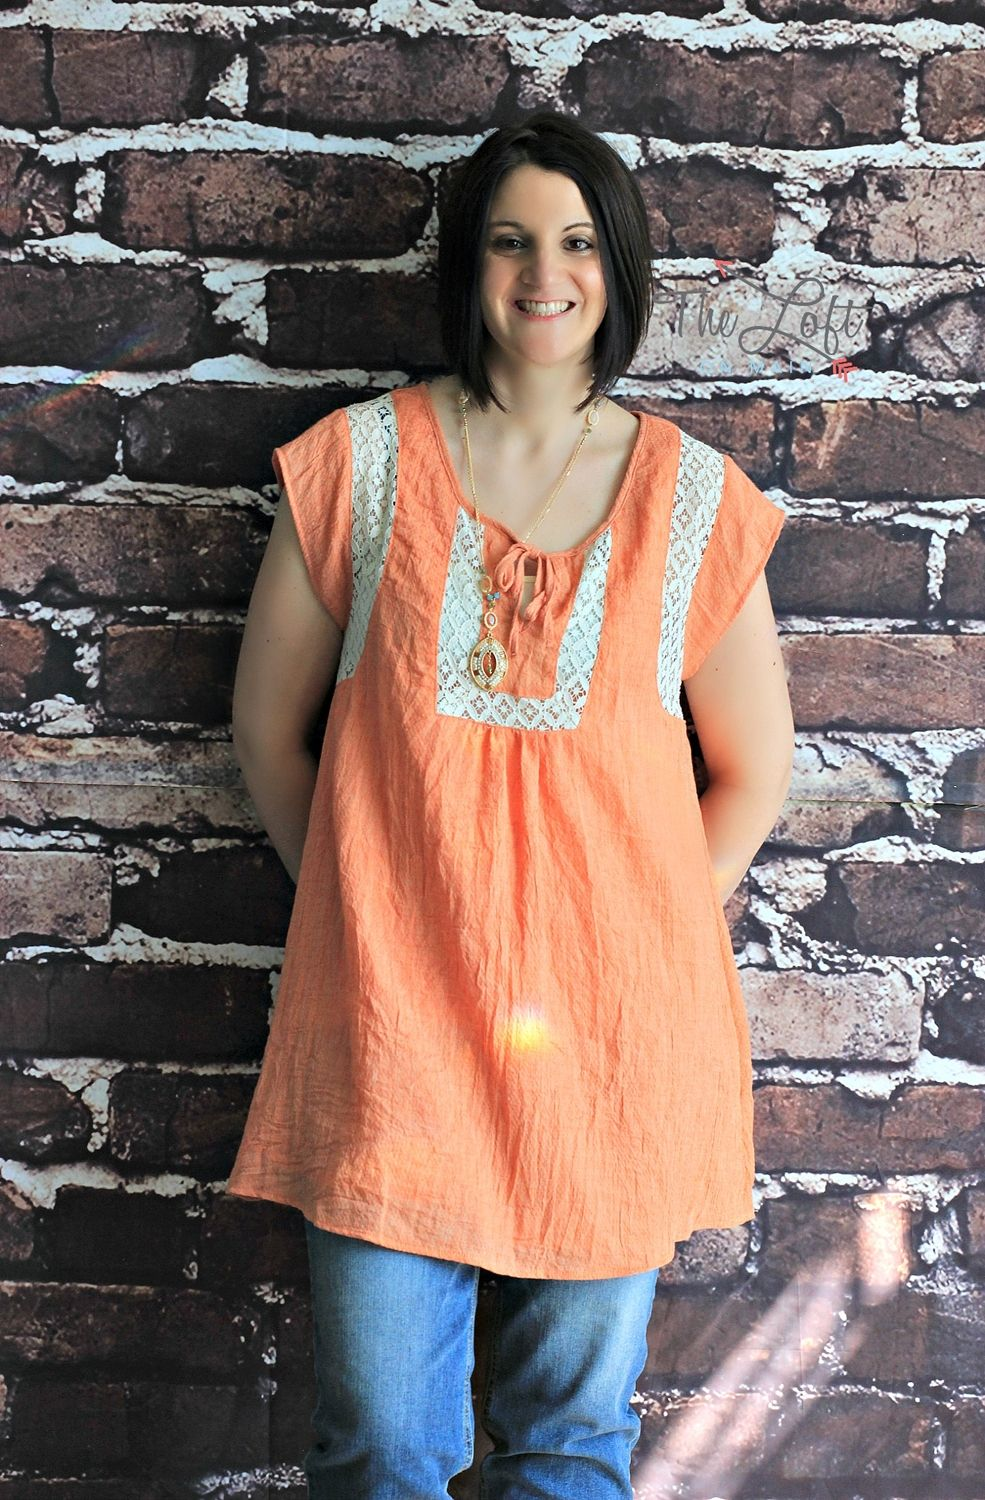 All about apricot with this lovely lace trimmed tunic...  Shop this look at The Loft in store or online...